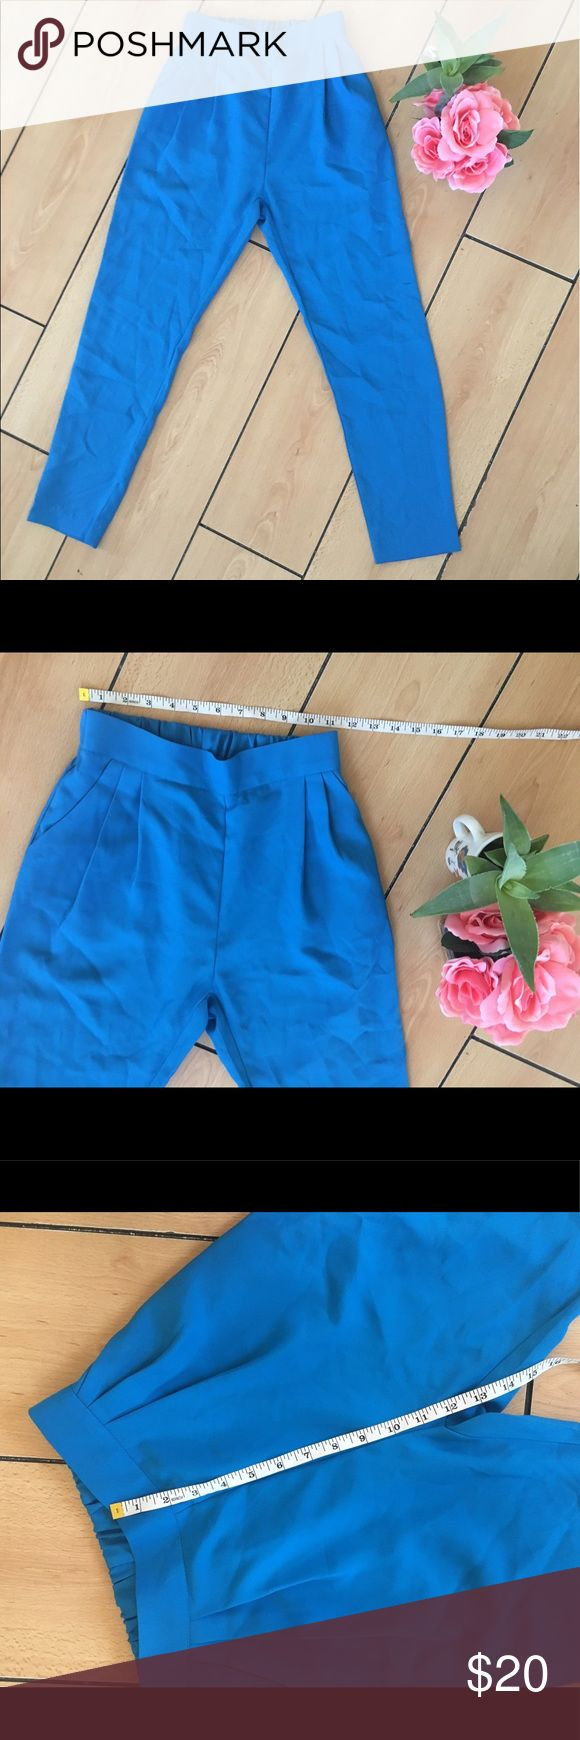 Super cute Slacks In good condition! Not American Apparel just listed for exposure American Apparel Pants Trousers